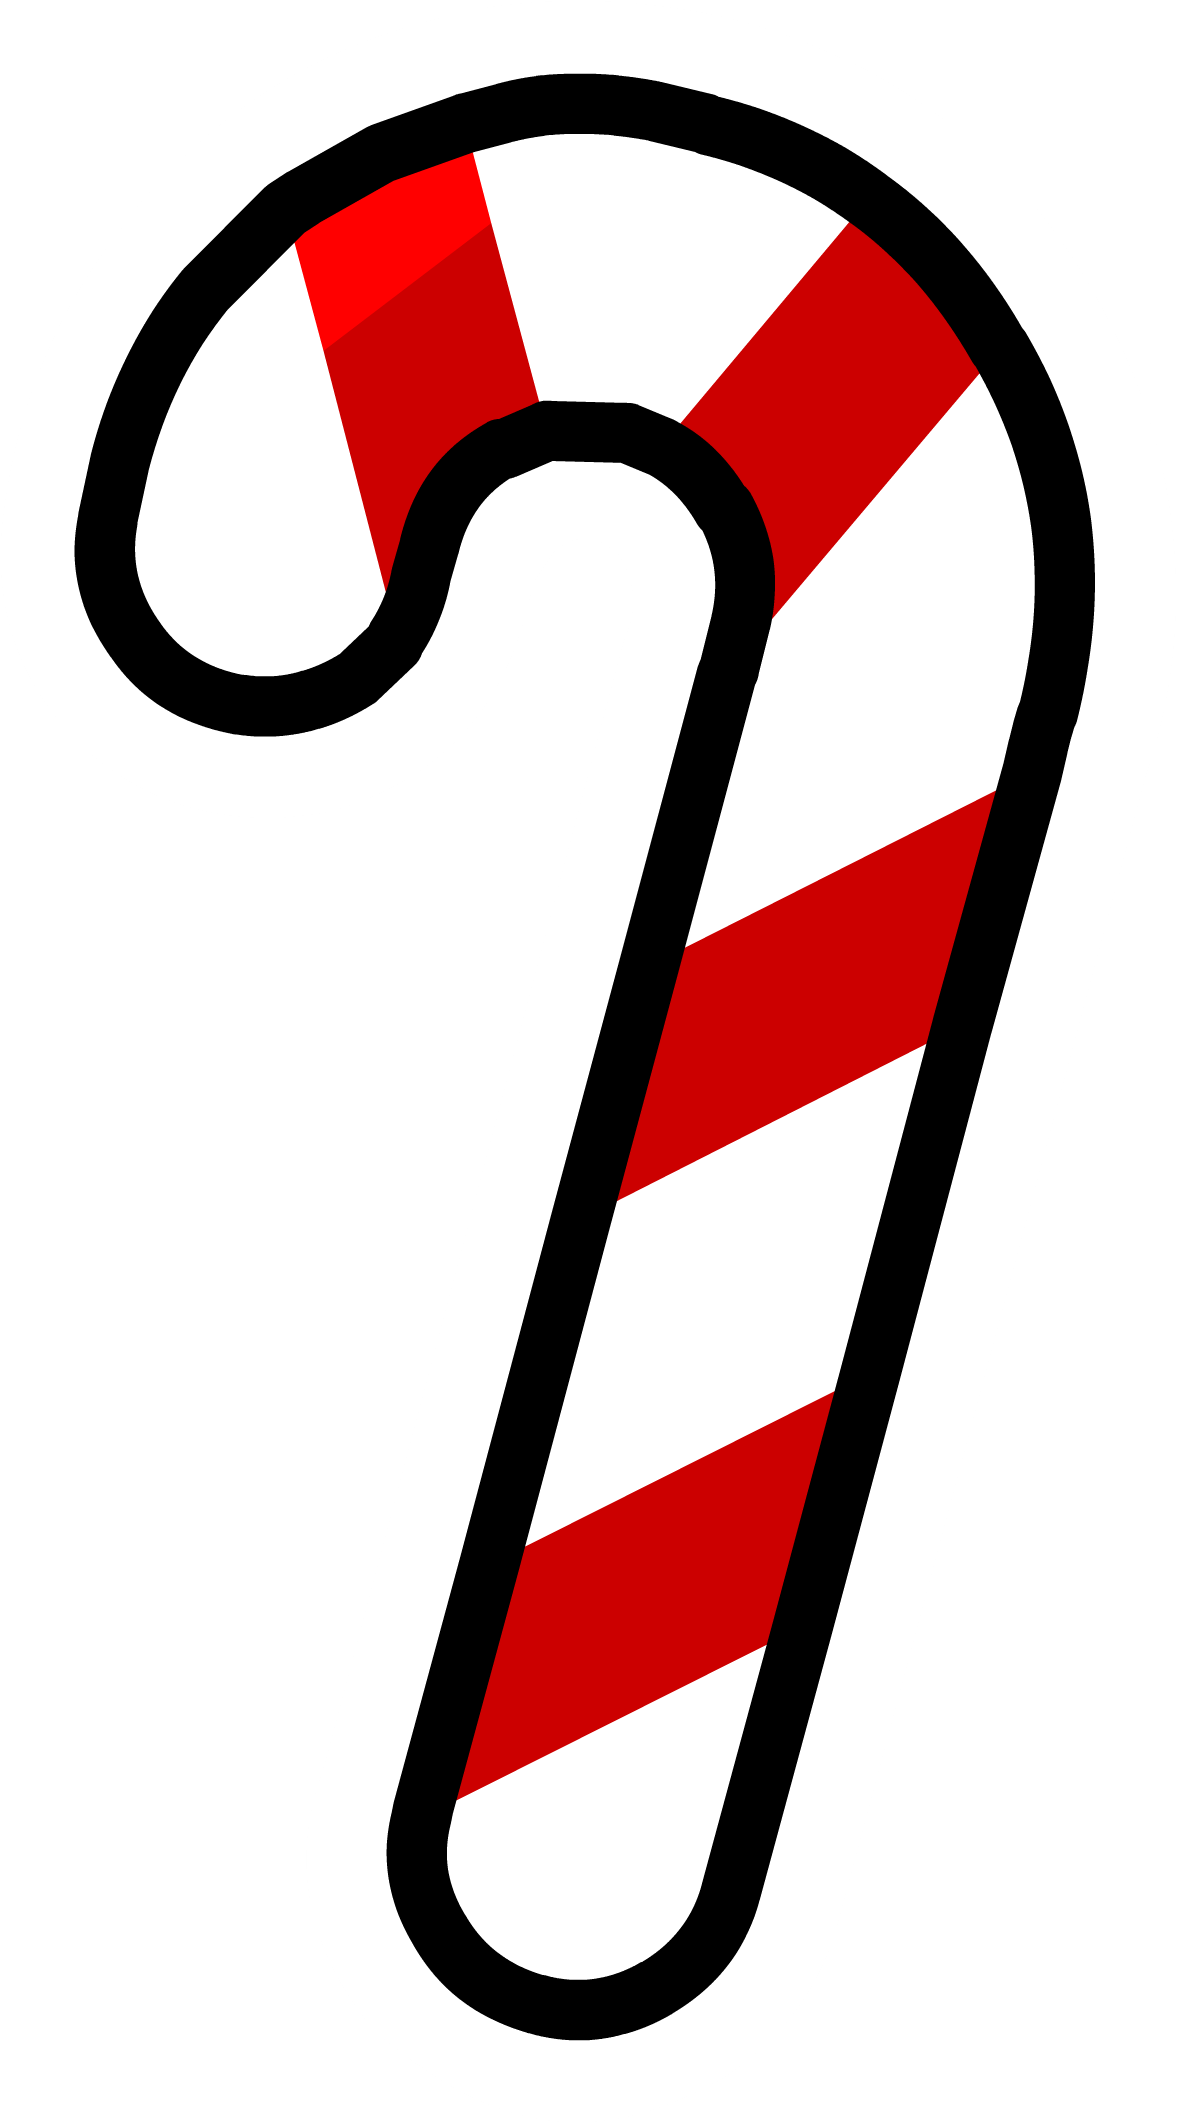 Pics group image pinpng. House clipart candy cane